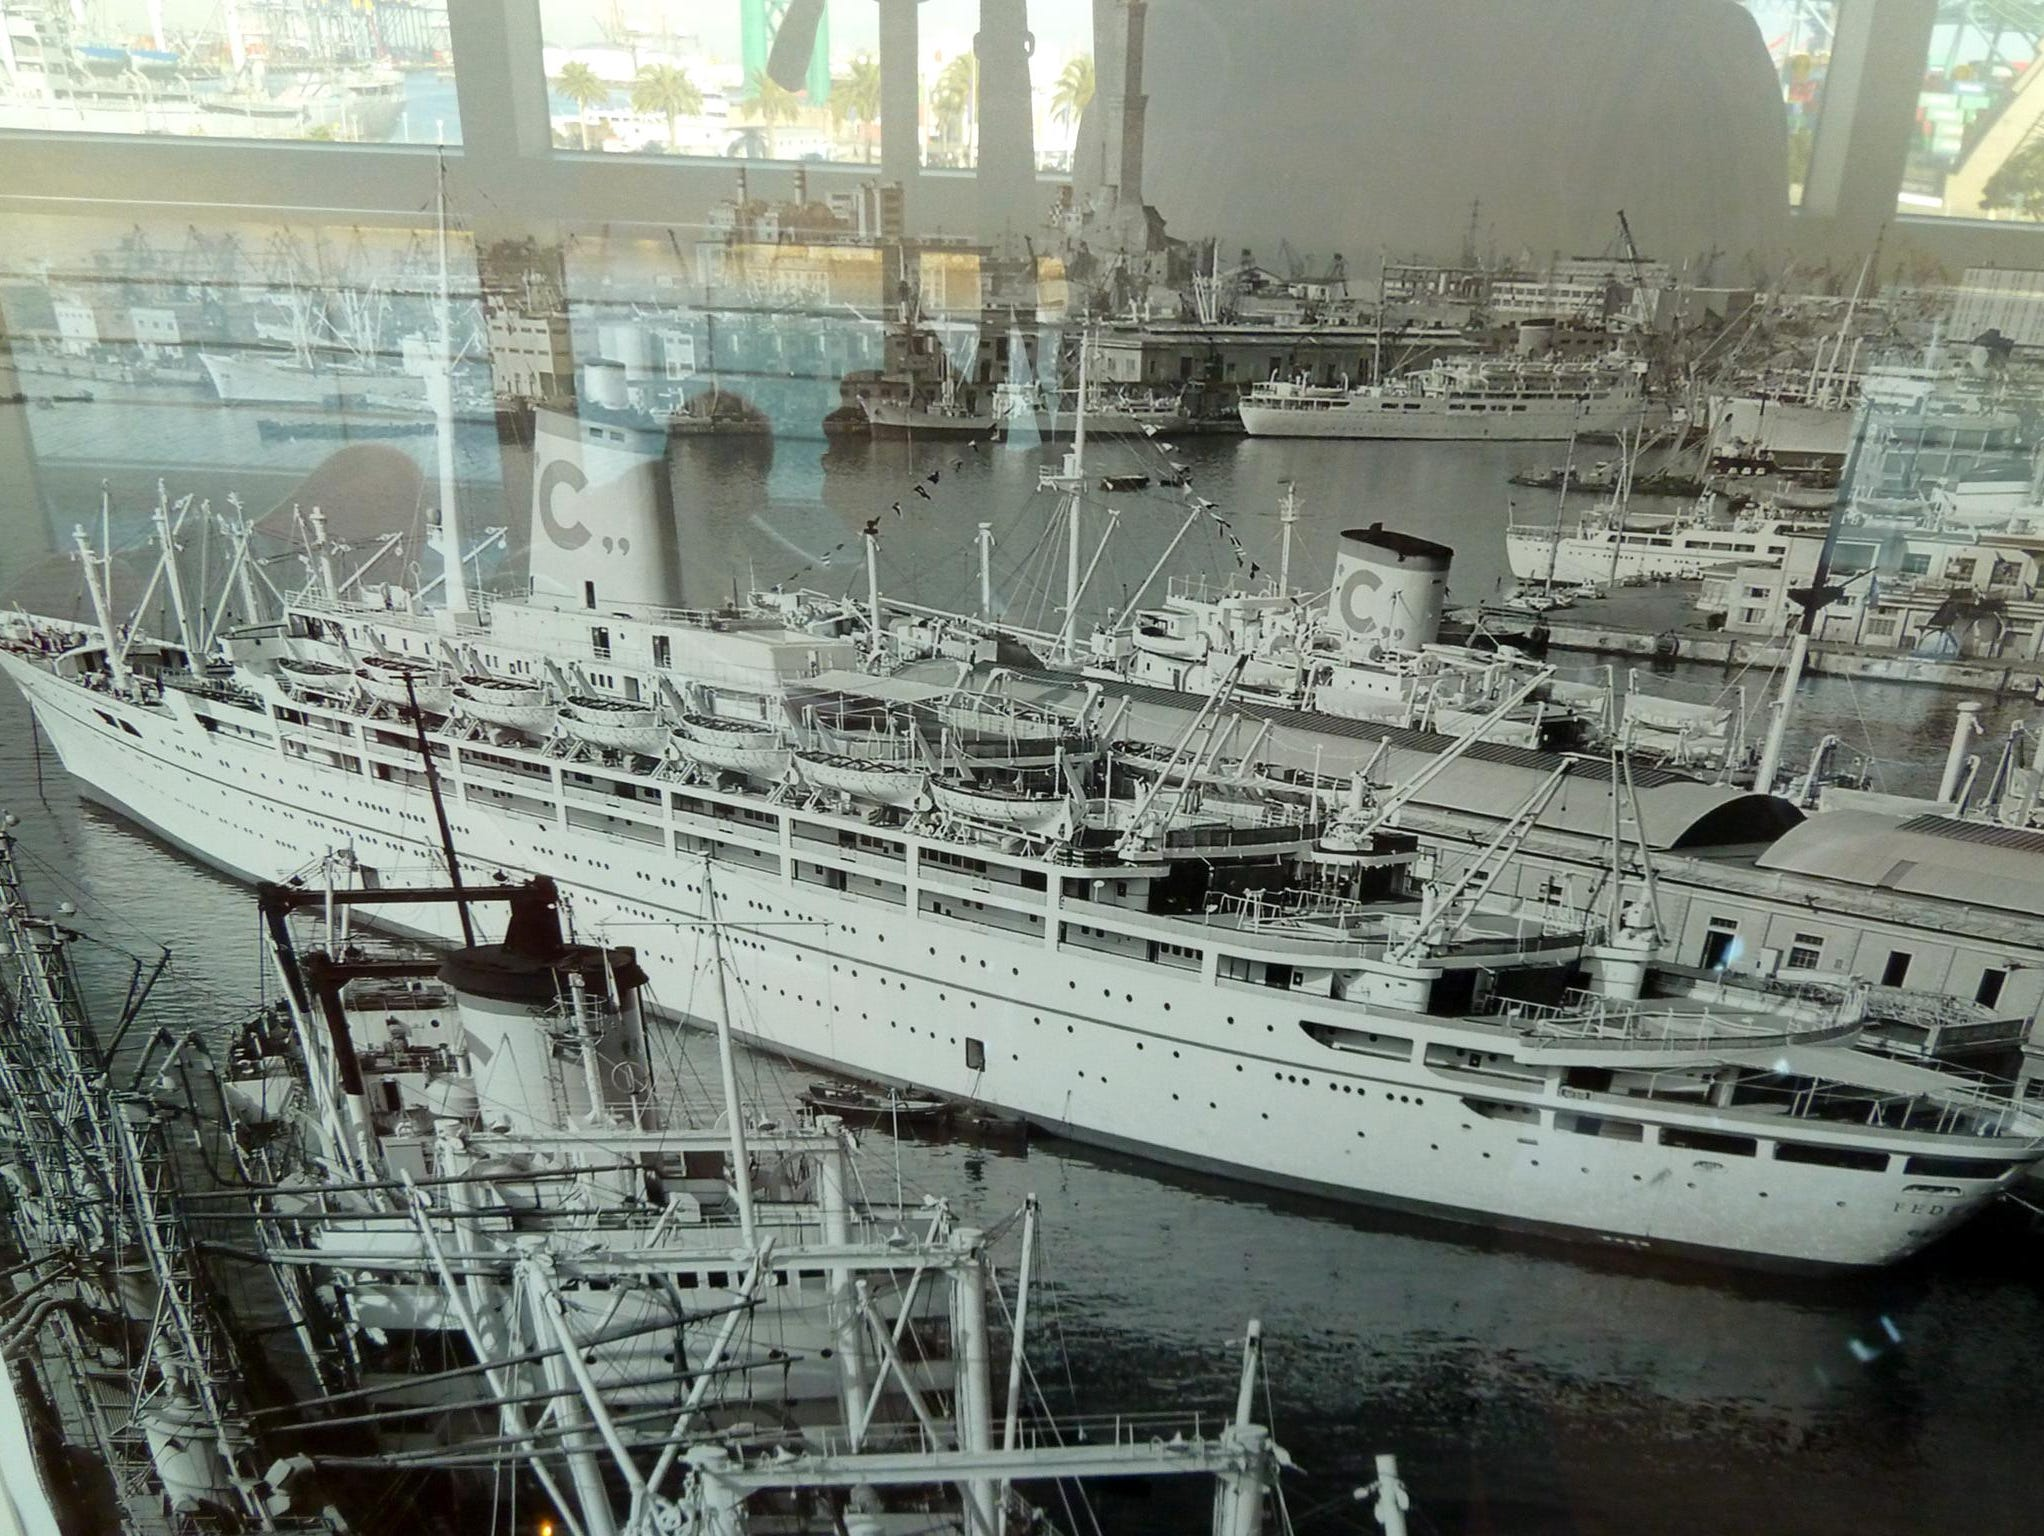 Historic black and white photos of late but great Costa liners such as the Bianca C, C. Columbus, Federico C and Eugenio C are on display in several parts of the ship.